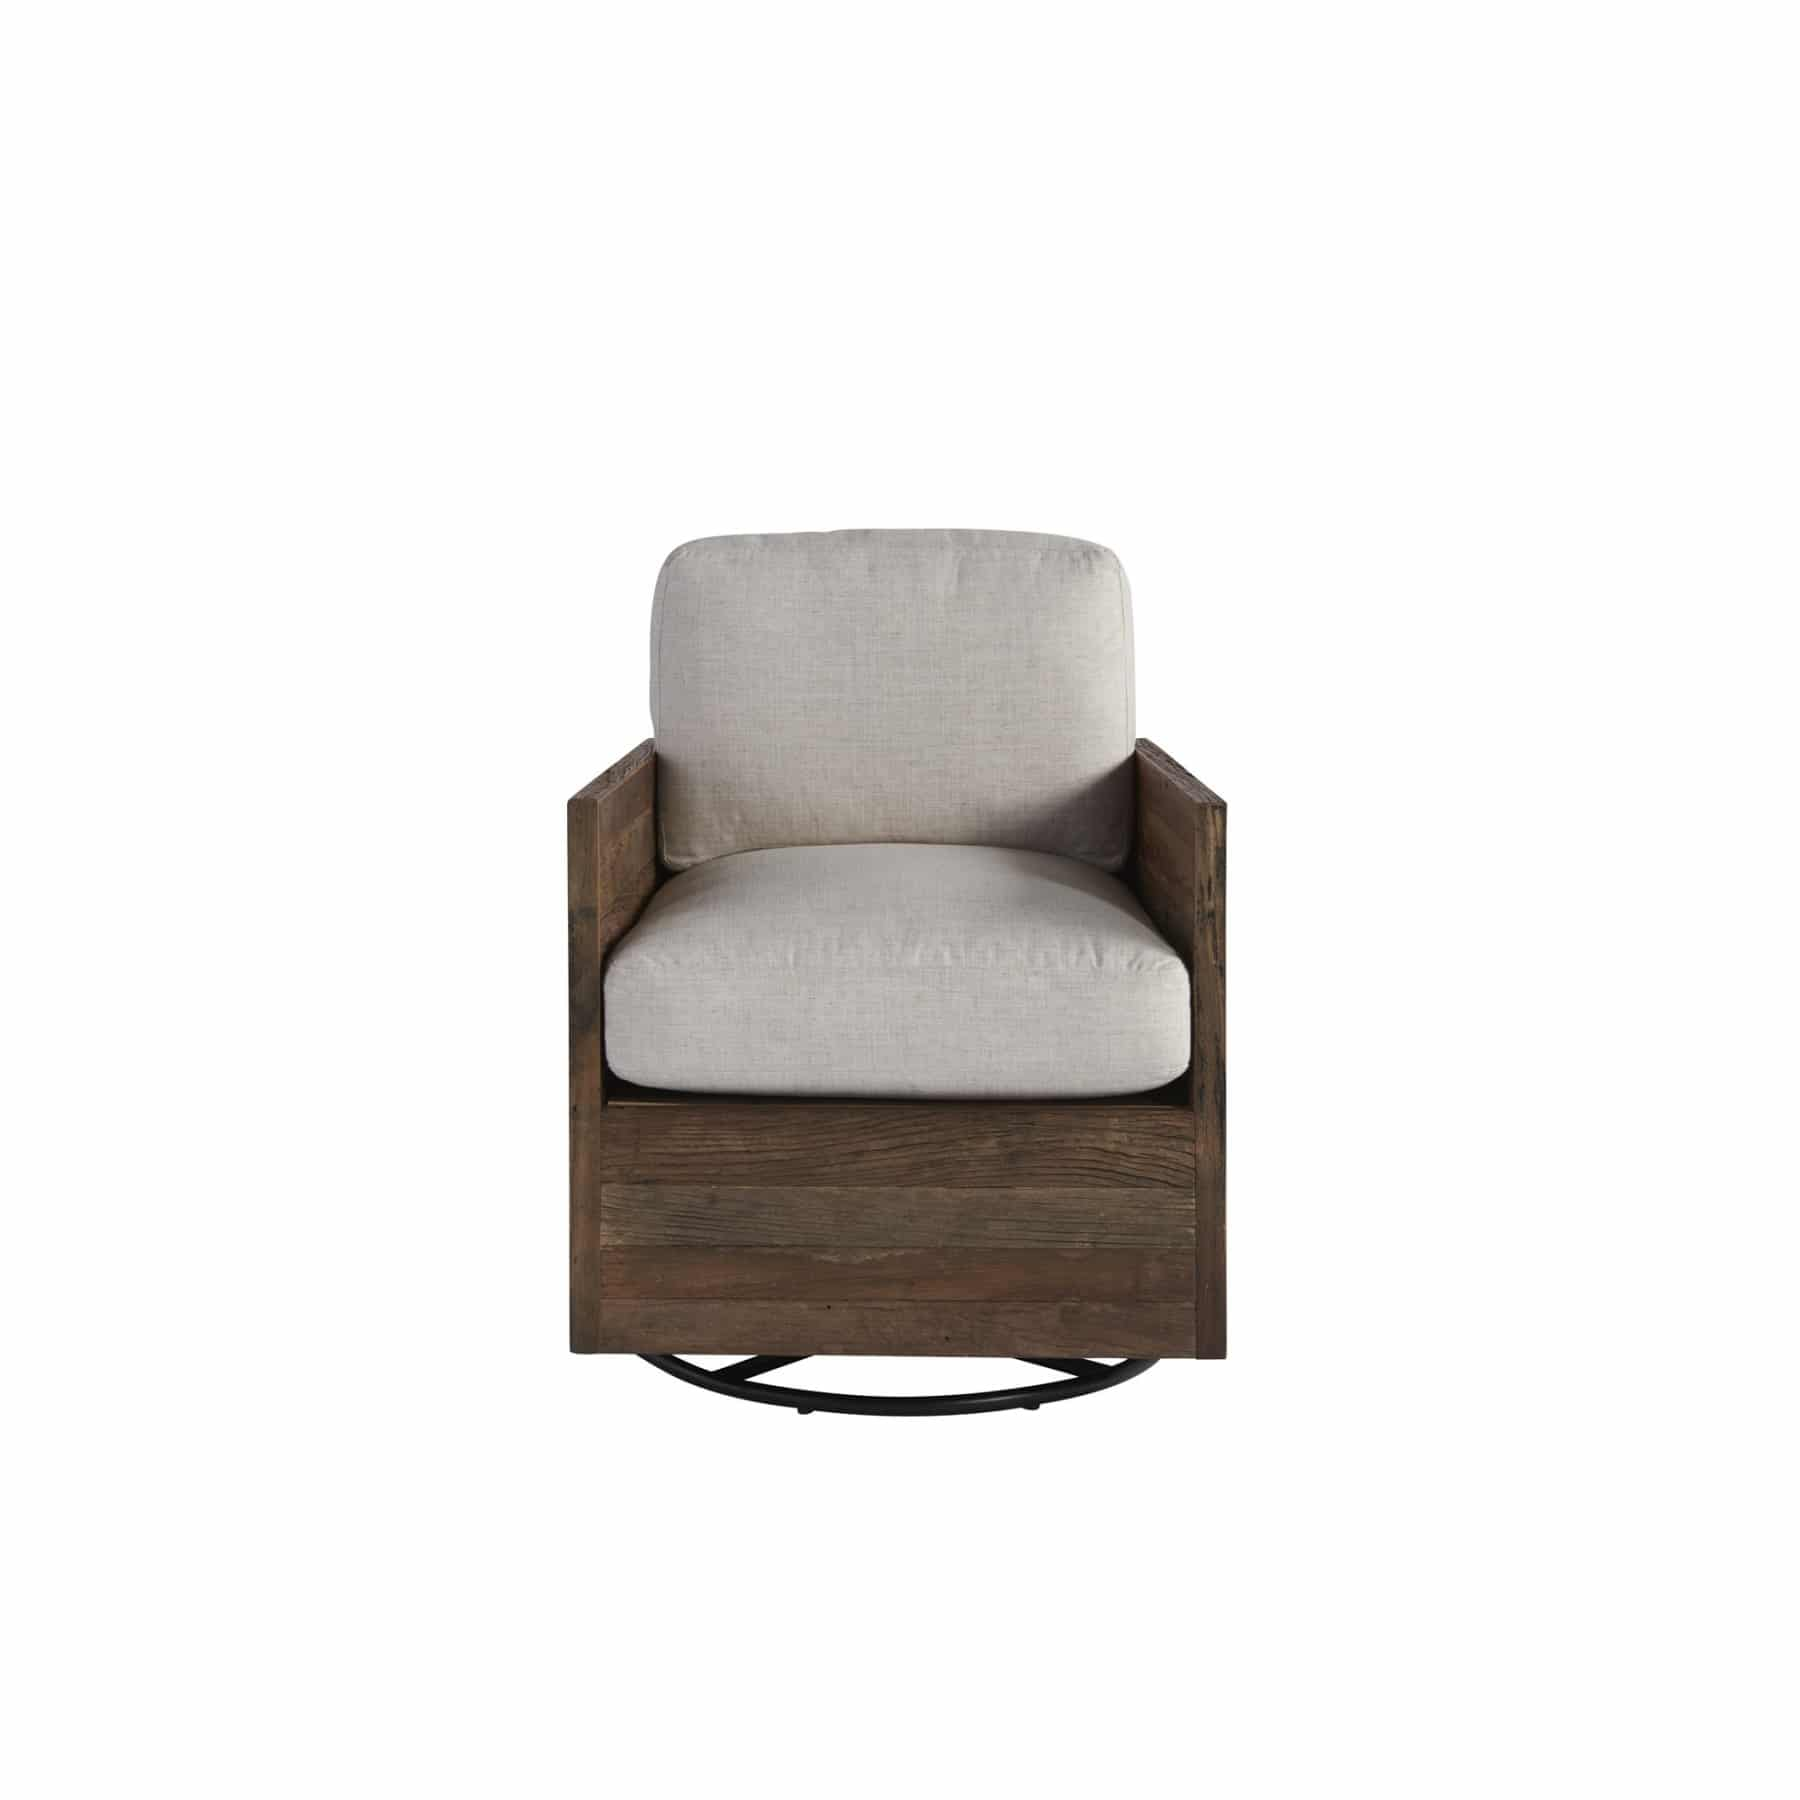 Admirable Willow Accent Chair Inzonedesignstudio Interior Chair Design Inzonedesignstudiocom